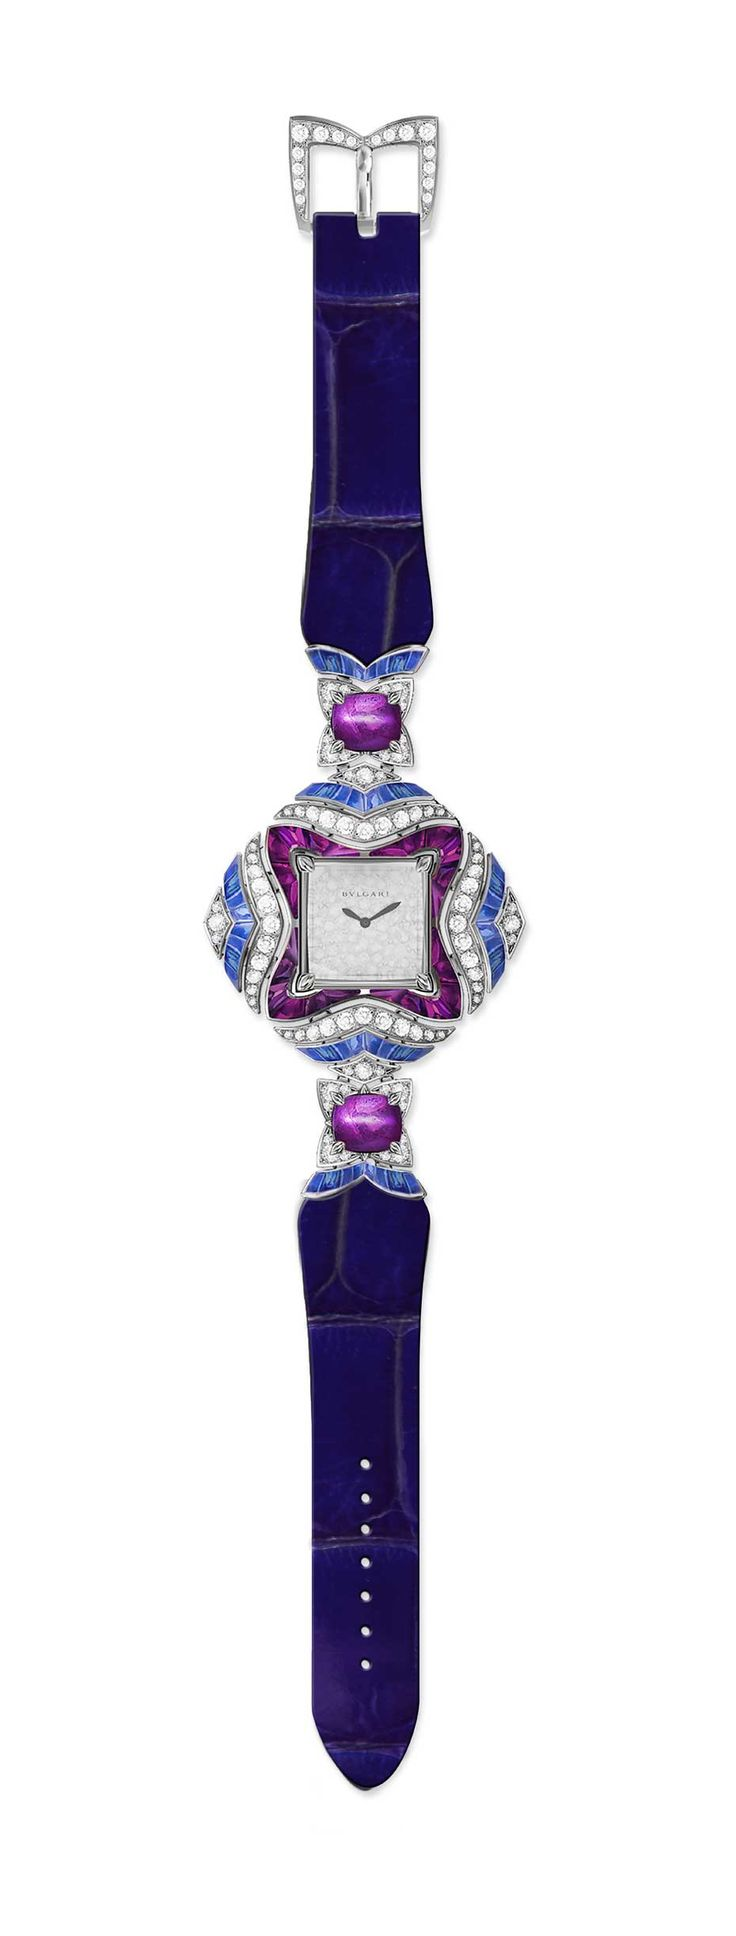 Bulgari Mvsa high jewellery watch with blue and pink sapphires and diamonds. ab7c5ab2a0